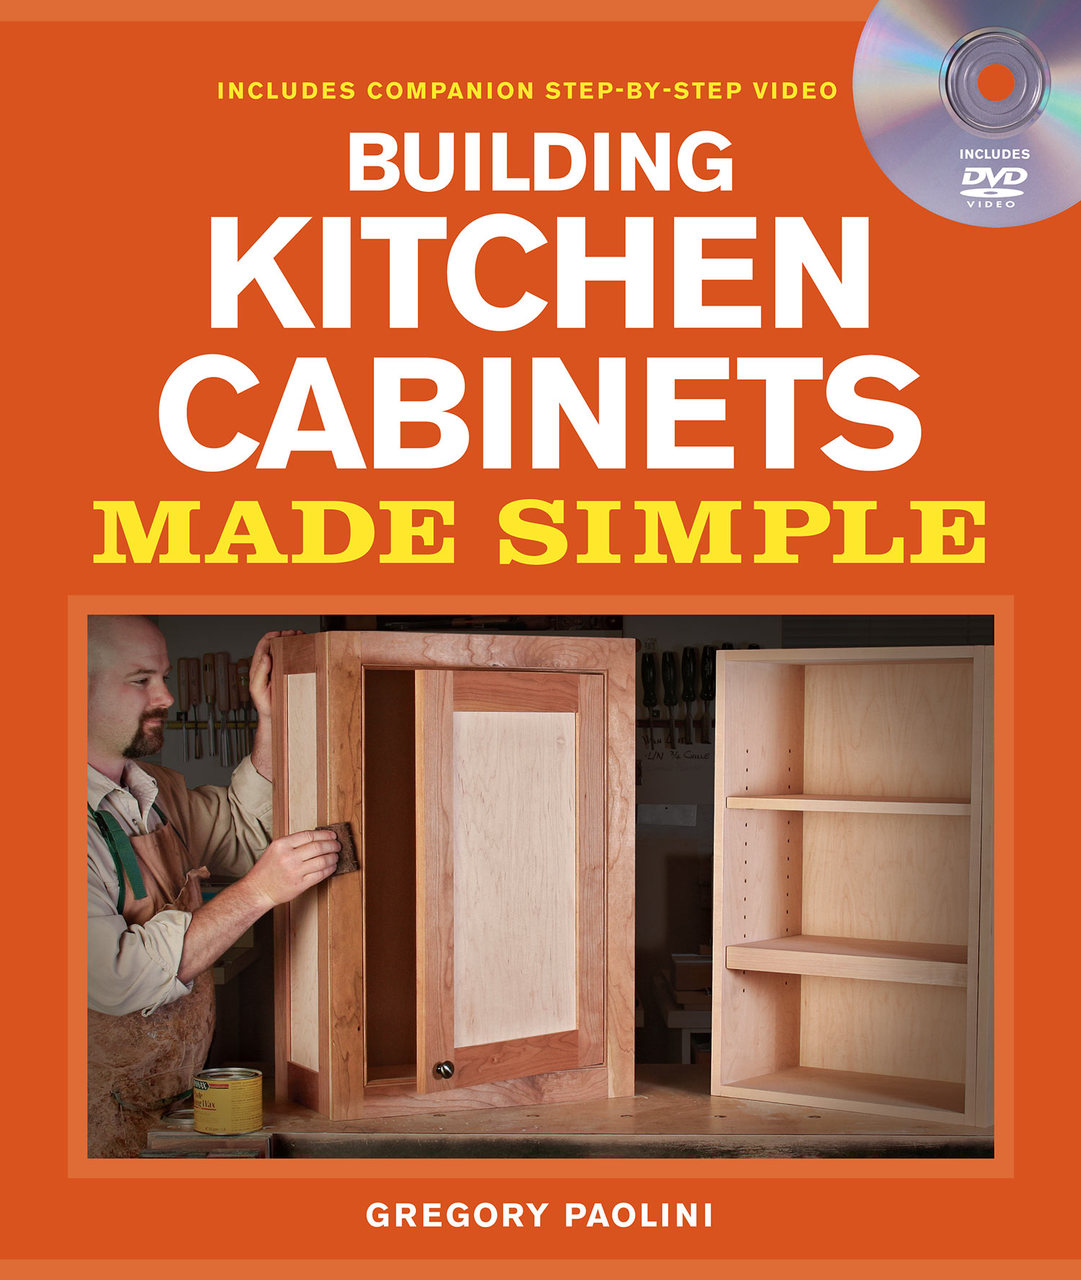 Building Kitchen Cabinets Made Simple By Gregory Paolini